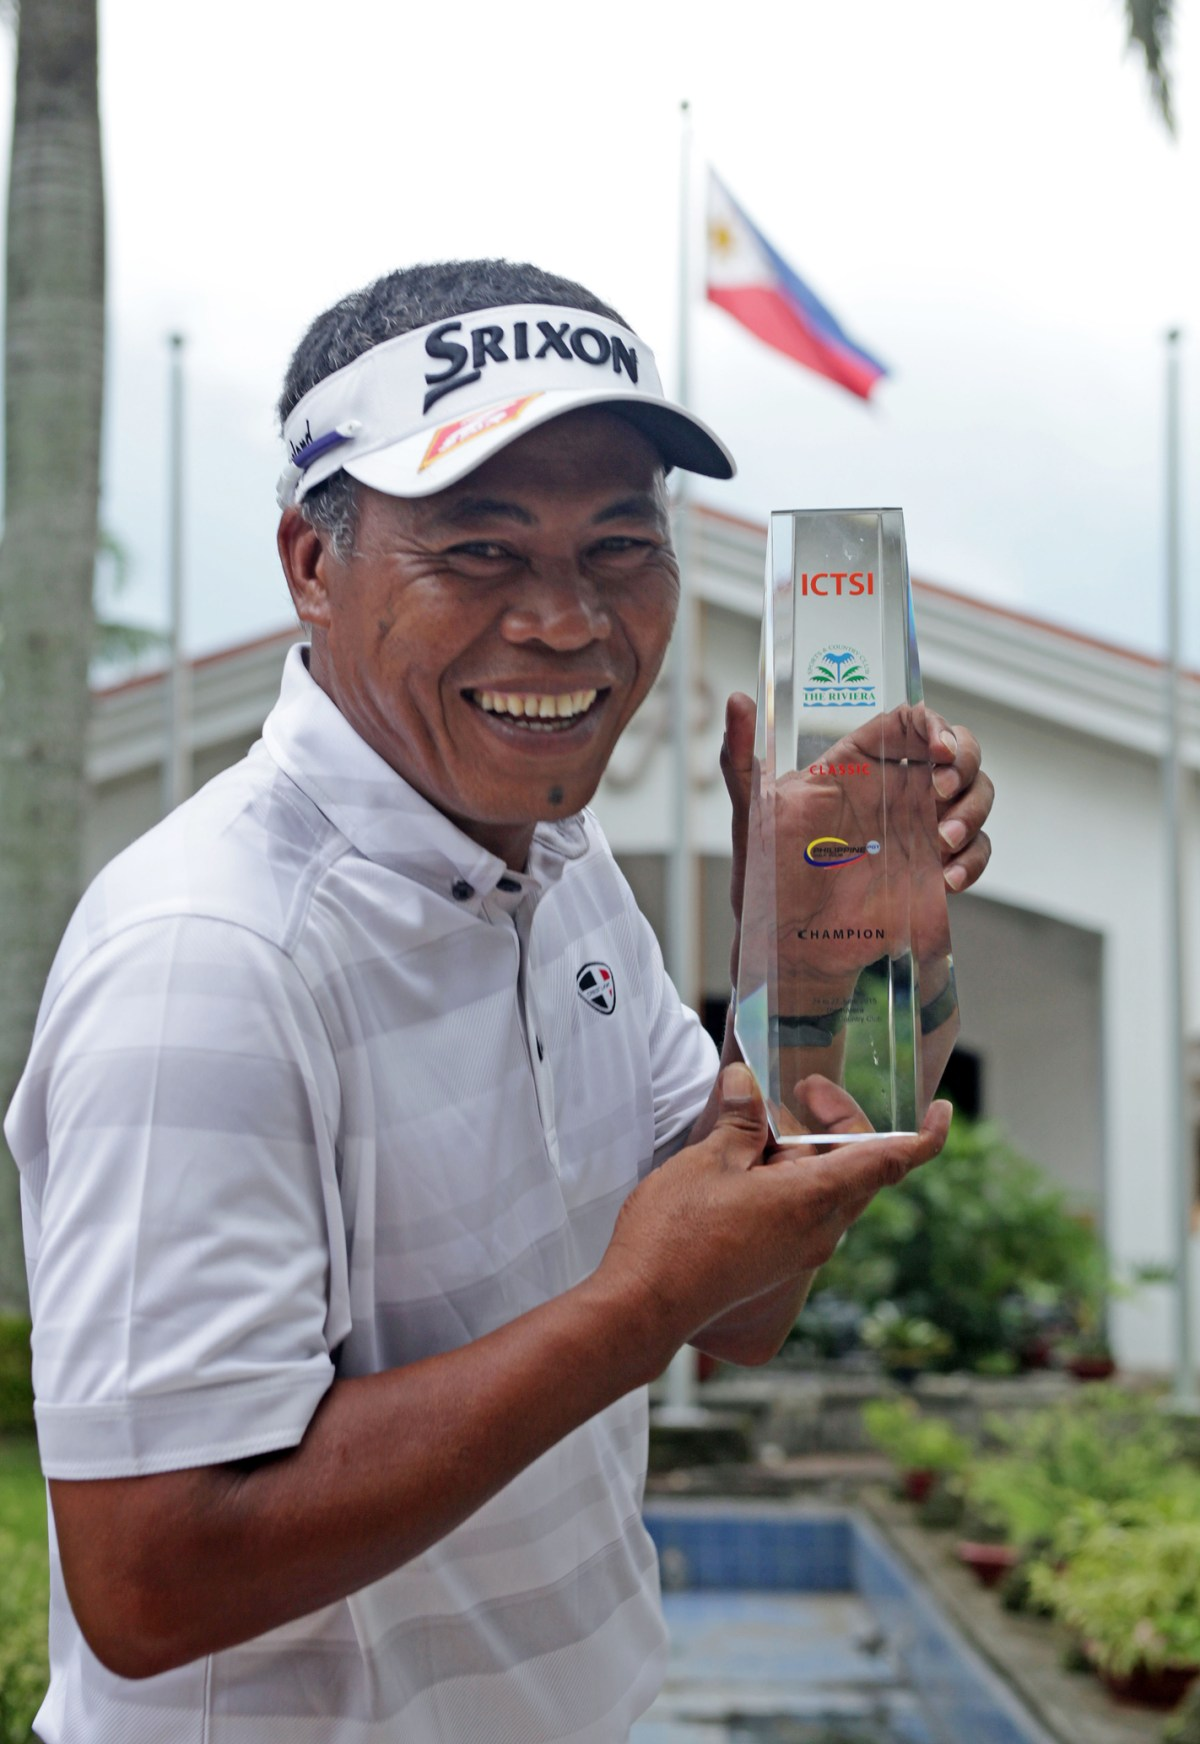 Elmer Salvador beams as he holds his trophy after beating Miguel Tabuena, Tony Lascuna and Rufino Bayron to retain the ICTSI Riviera Classic crown.